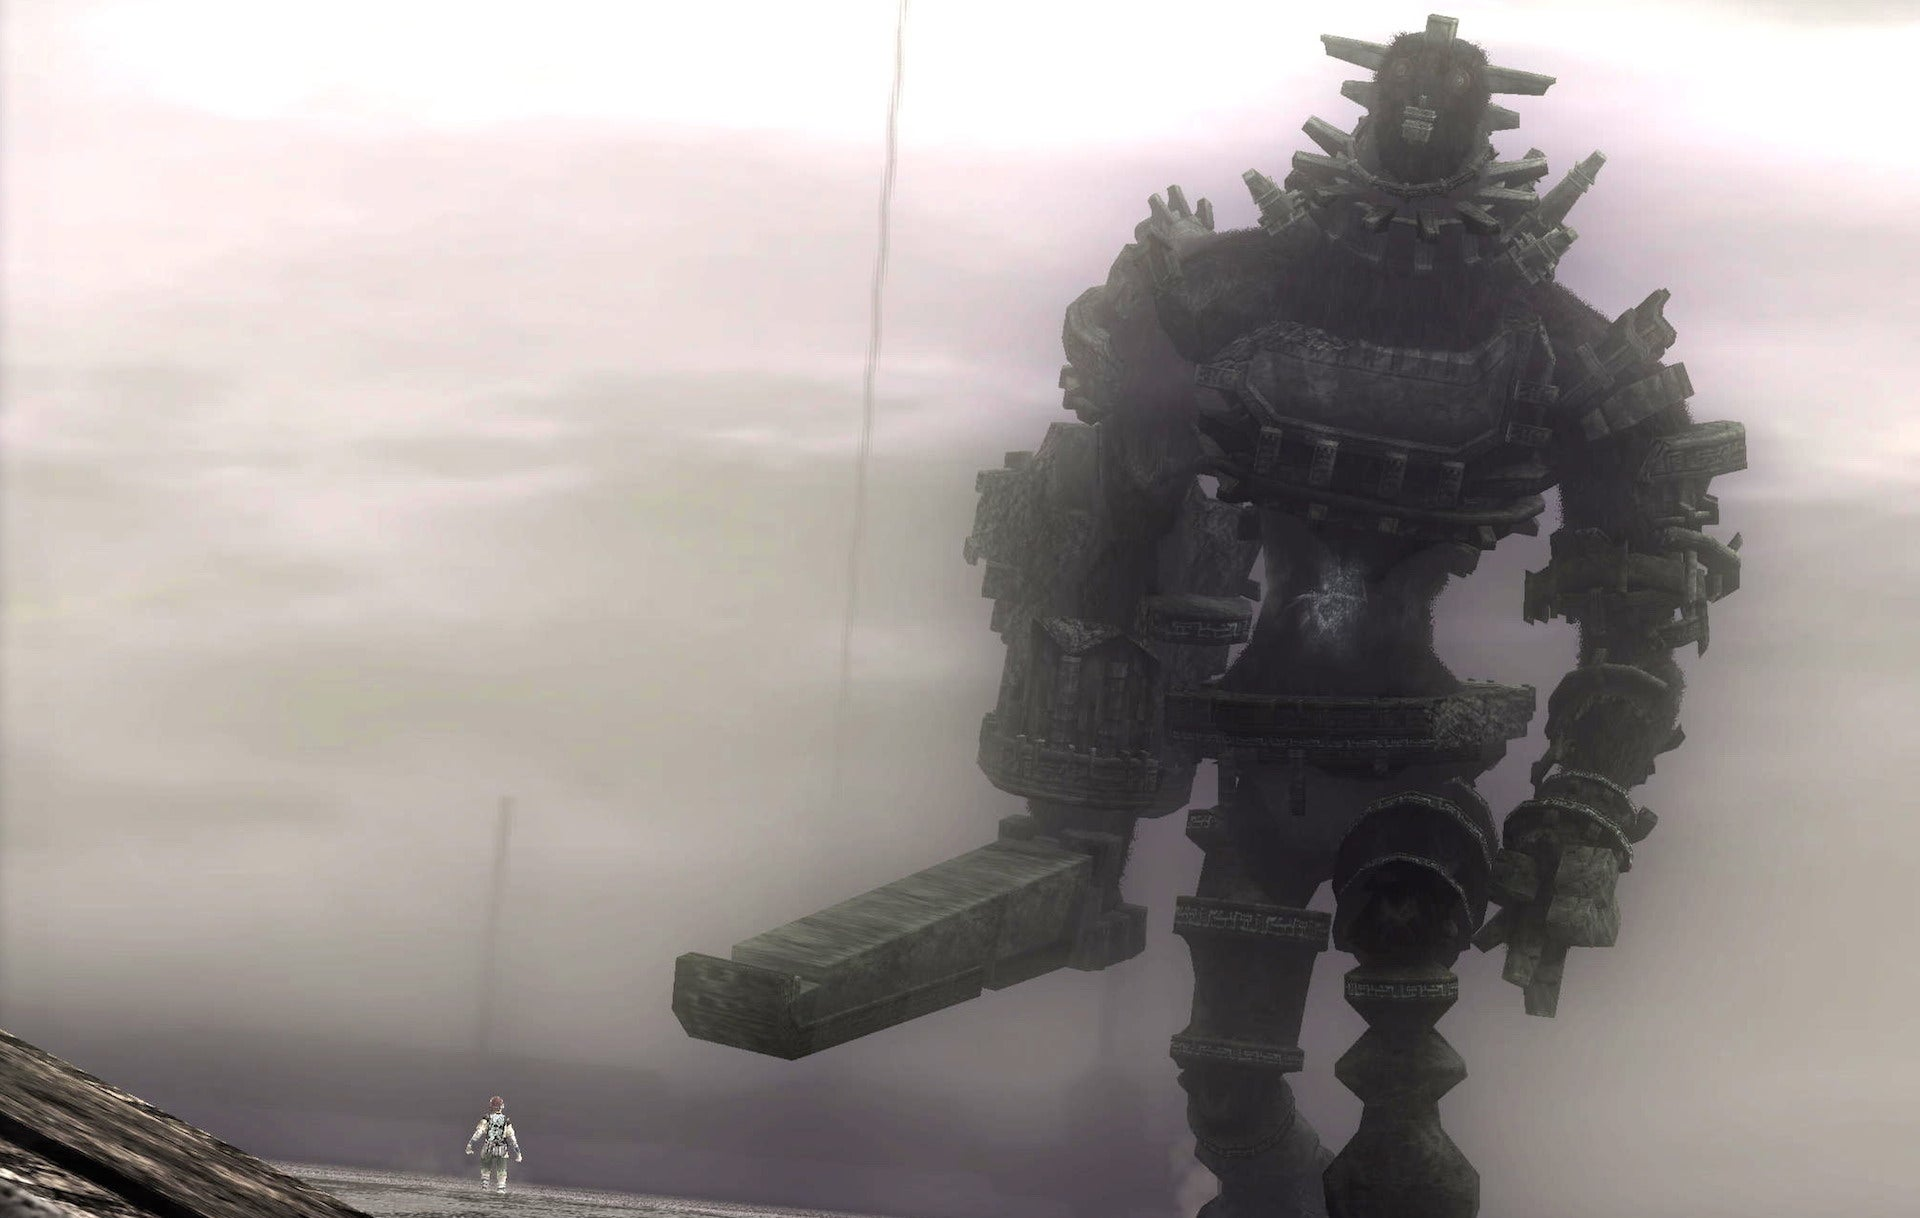 Meet the Hacker Who's Spent Four Years Inside Shadow Of The Colossus